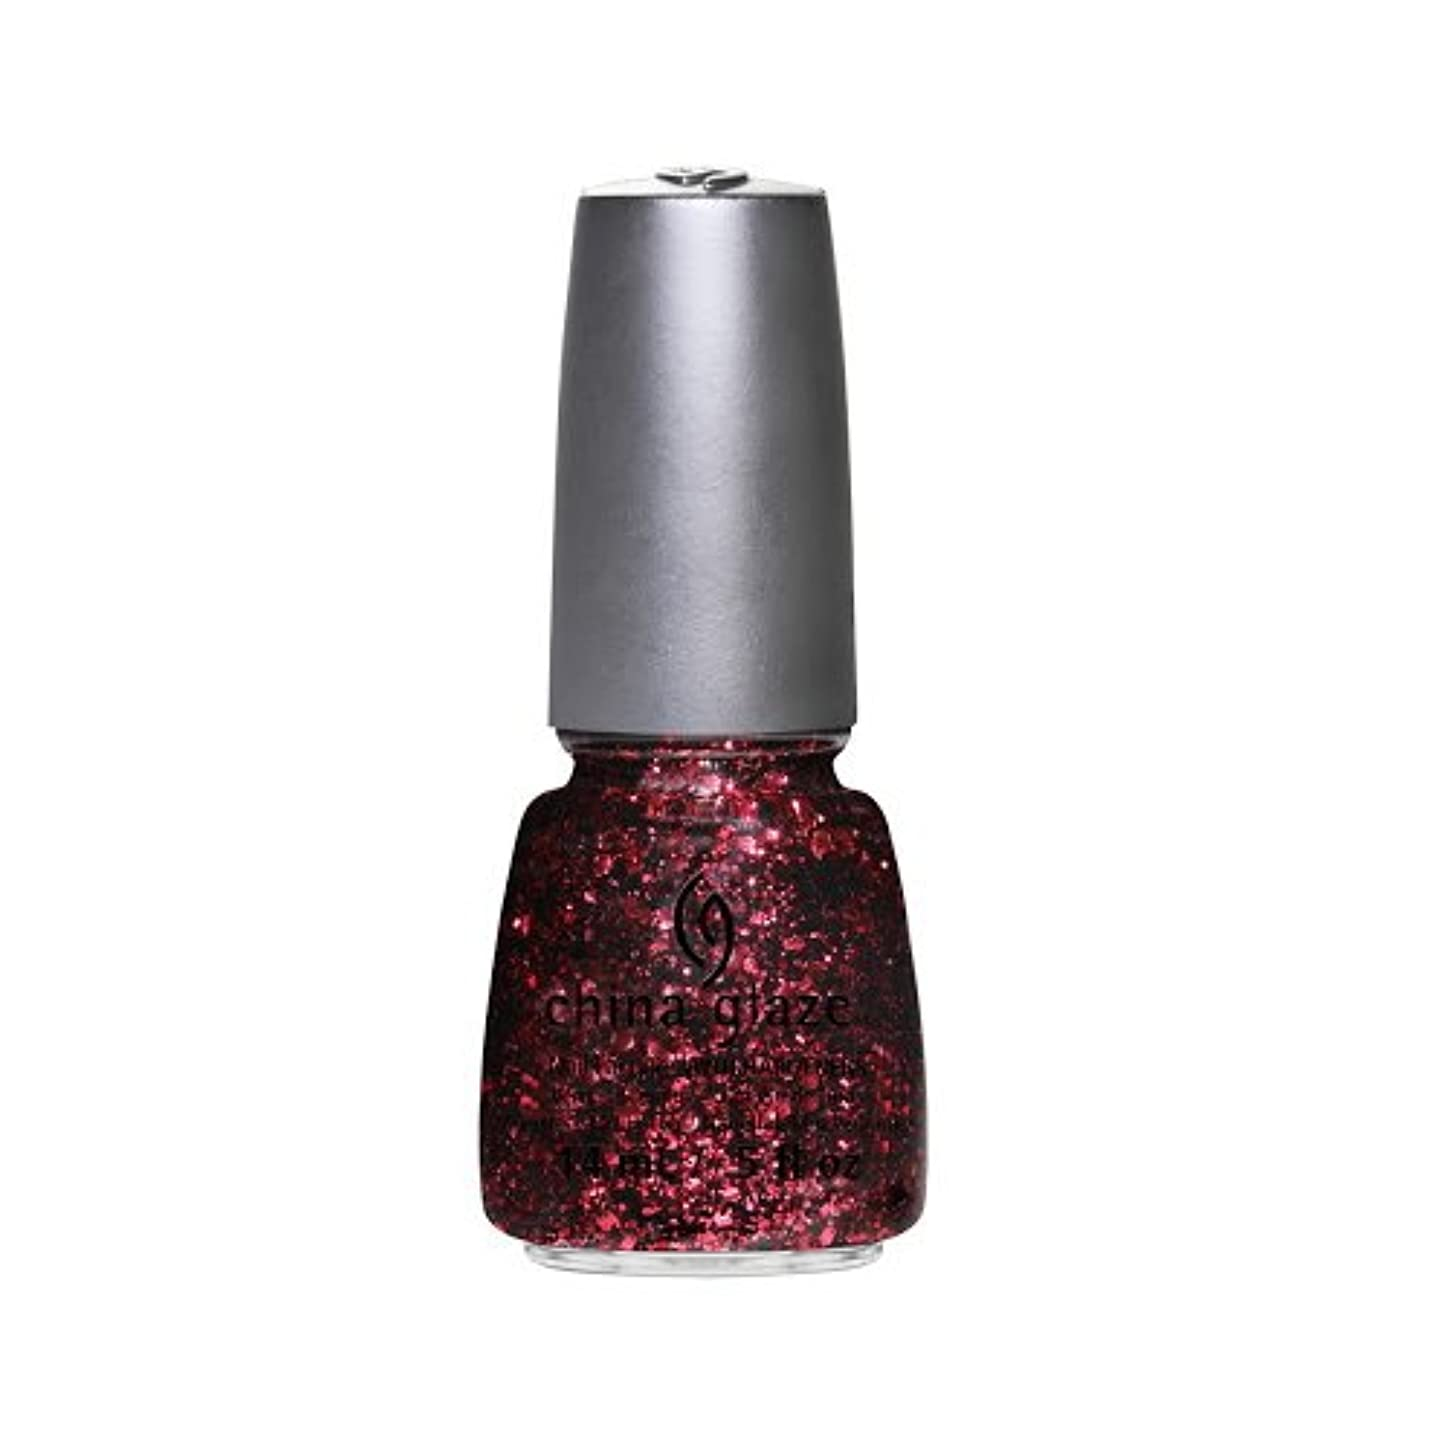 冷凍庫不器用ハイキングに行くCHINA GLAZE Nail Lacquer - Glitz Bitz ???n Pieces Collection - Scattered & Tattered (並行輸入品)